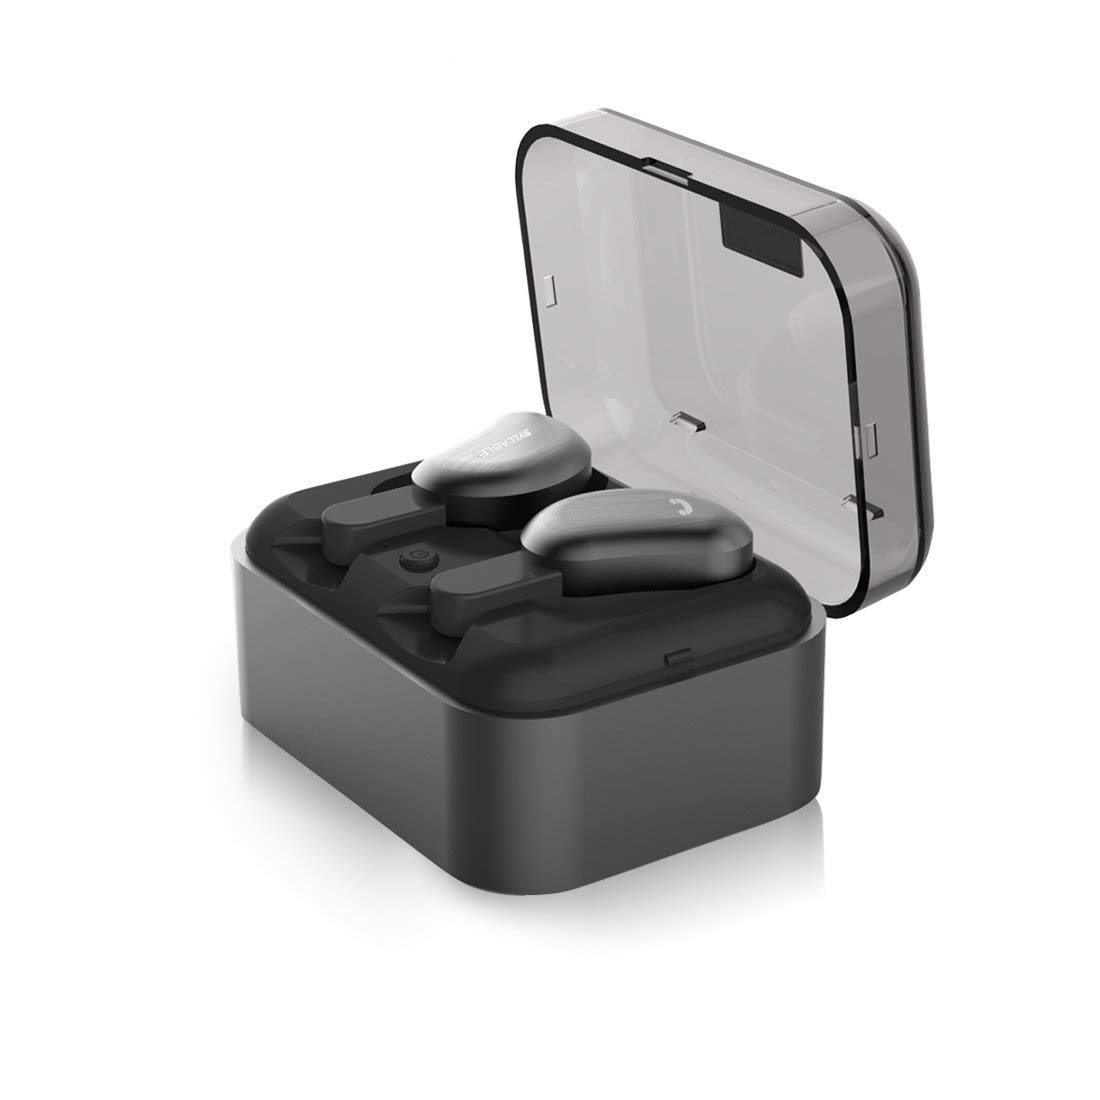 Wireless Bluetooth Earbuds, Syllable Sweatproof in-Ear Earphones with Mic and Smart Charging Box Dock for Sports Running (Black) (Black)